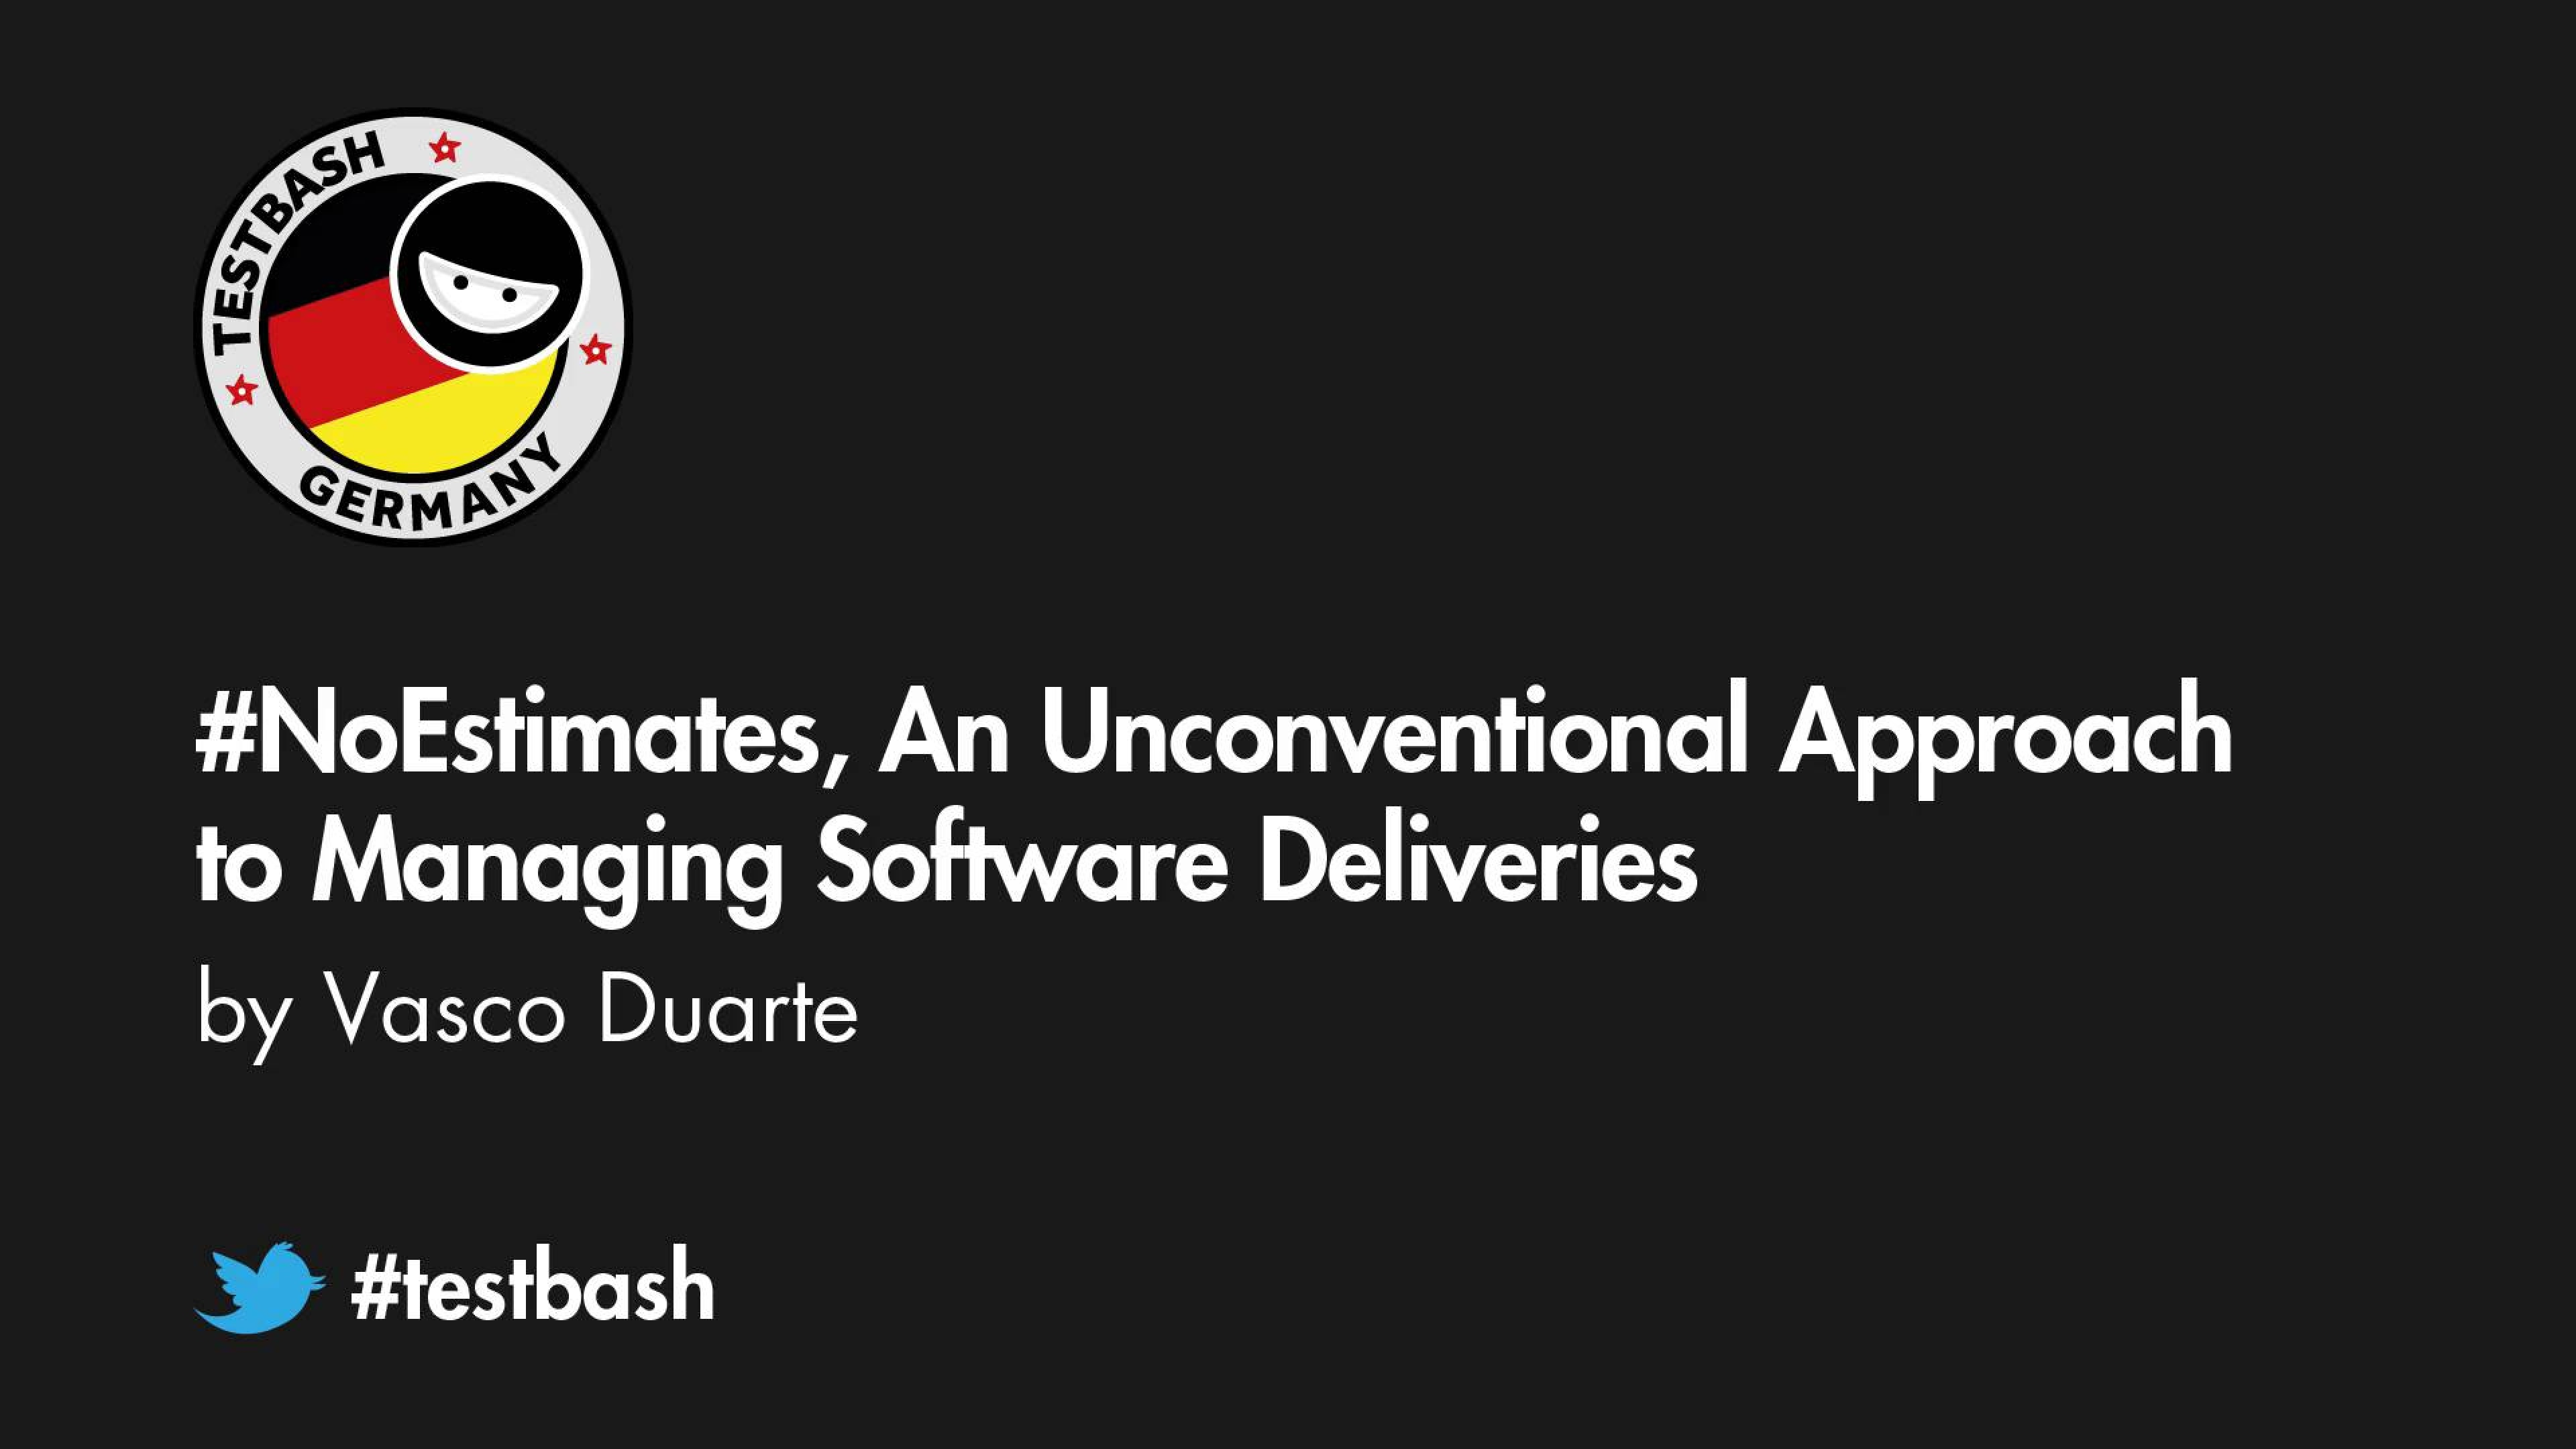 #NoEstimates, An Unconventional Approach to Managing Software Deliveries - Vasco Duarte